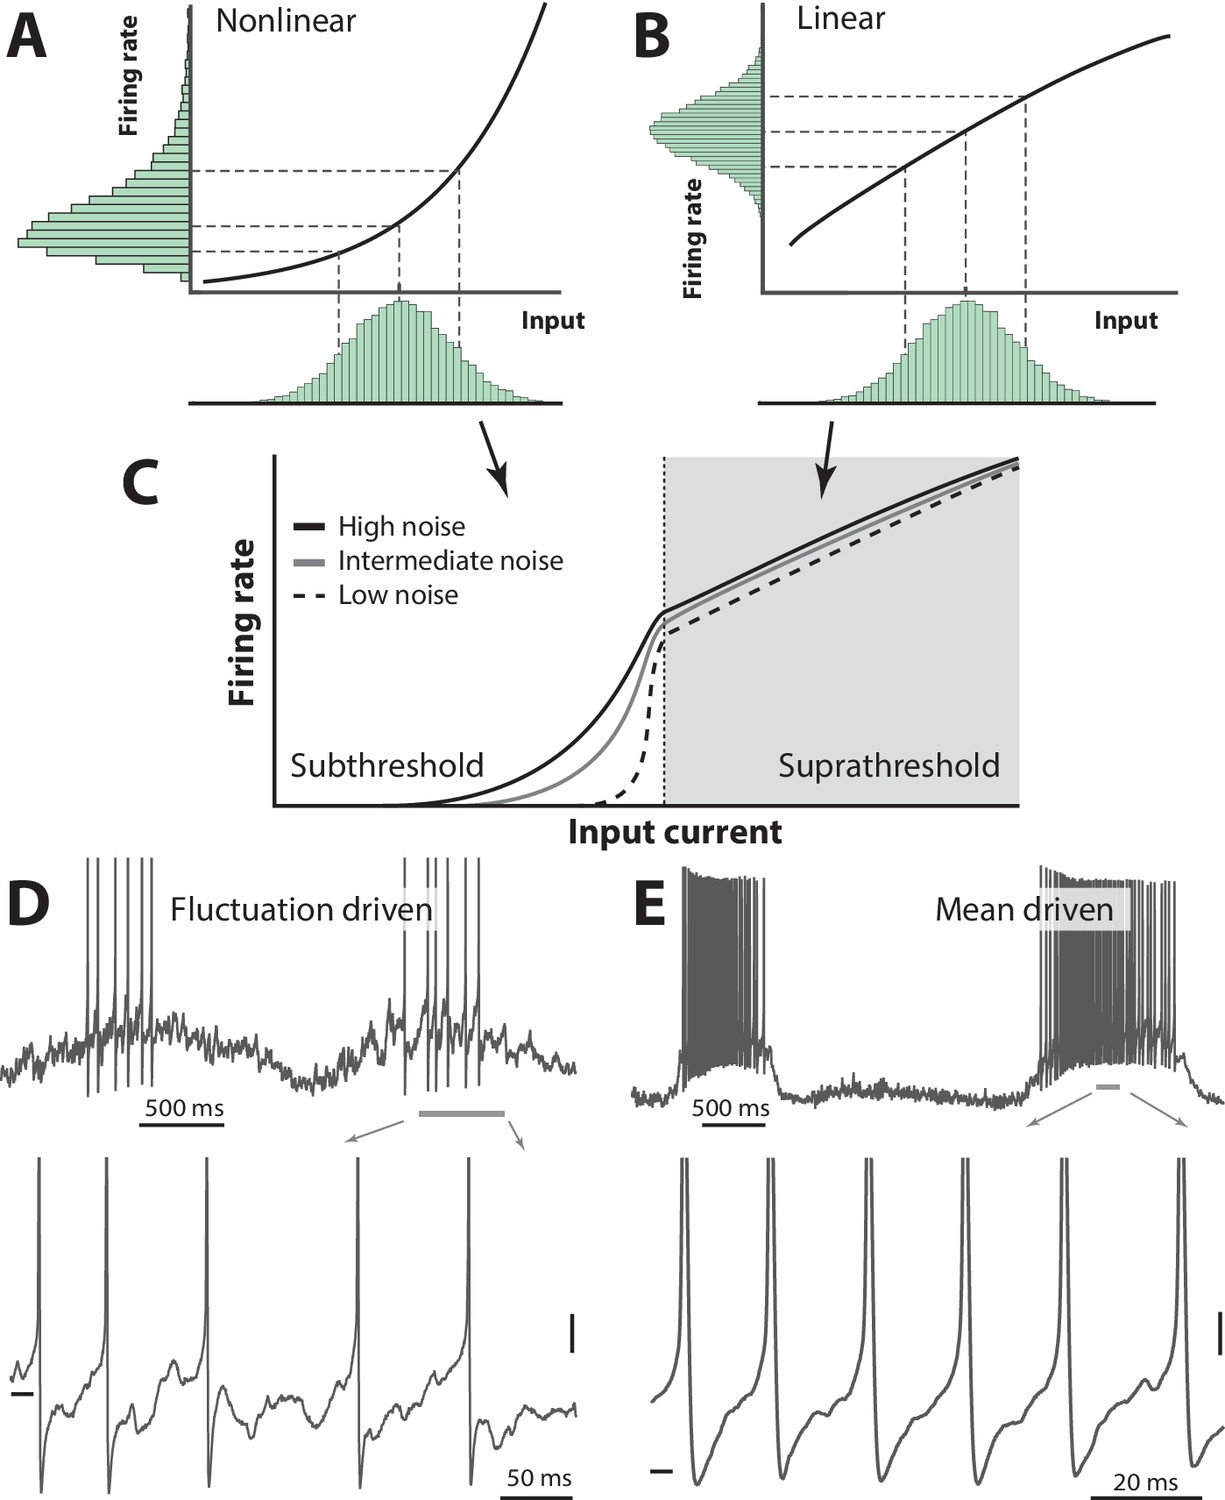 Lognormal Firing Rate Distribution Reveals Prominent Fluctuation Simple Circuit Drives Manages Laser Diode39s Output Analog Content Skewness Of The Two Regimes Neuronal Spiking